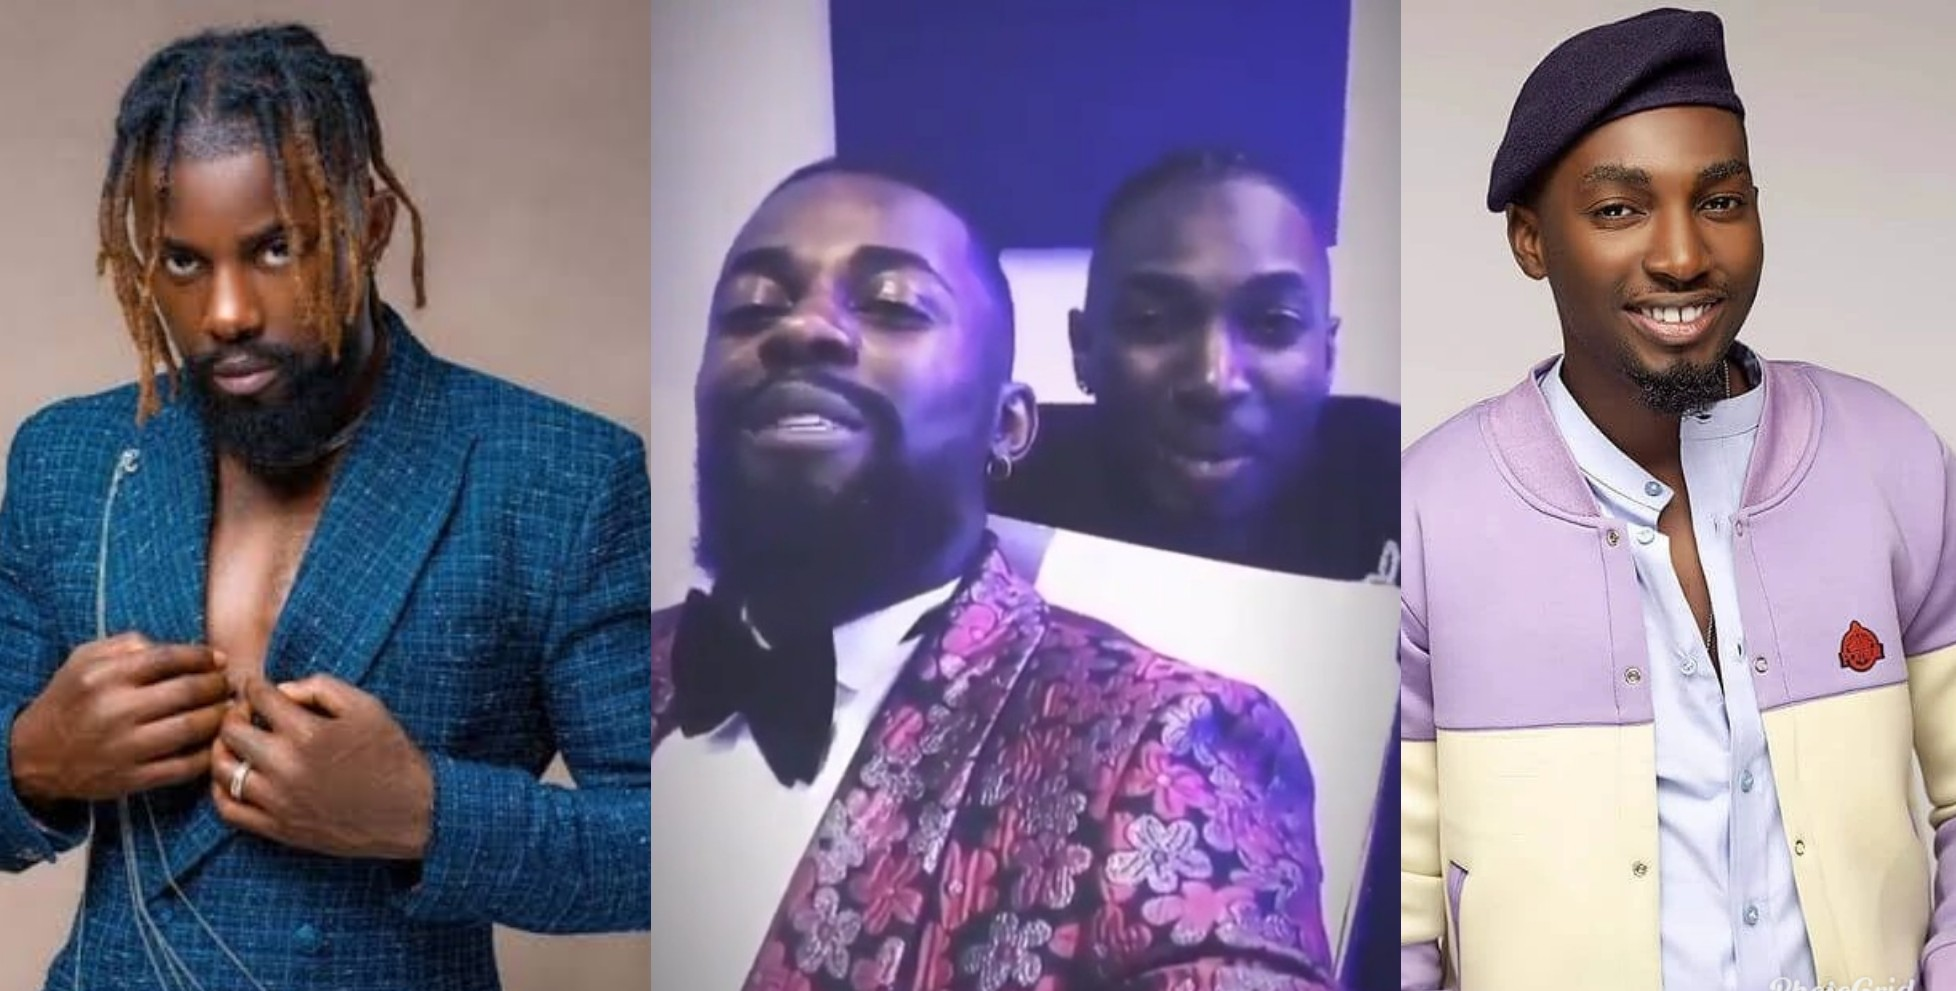 VIDEO: Michael and JayPaul Work Together On New Music In The Studio